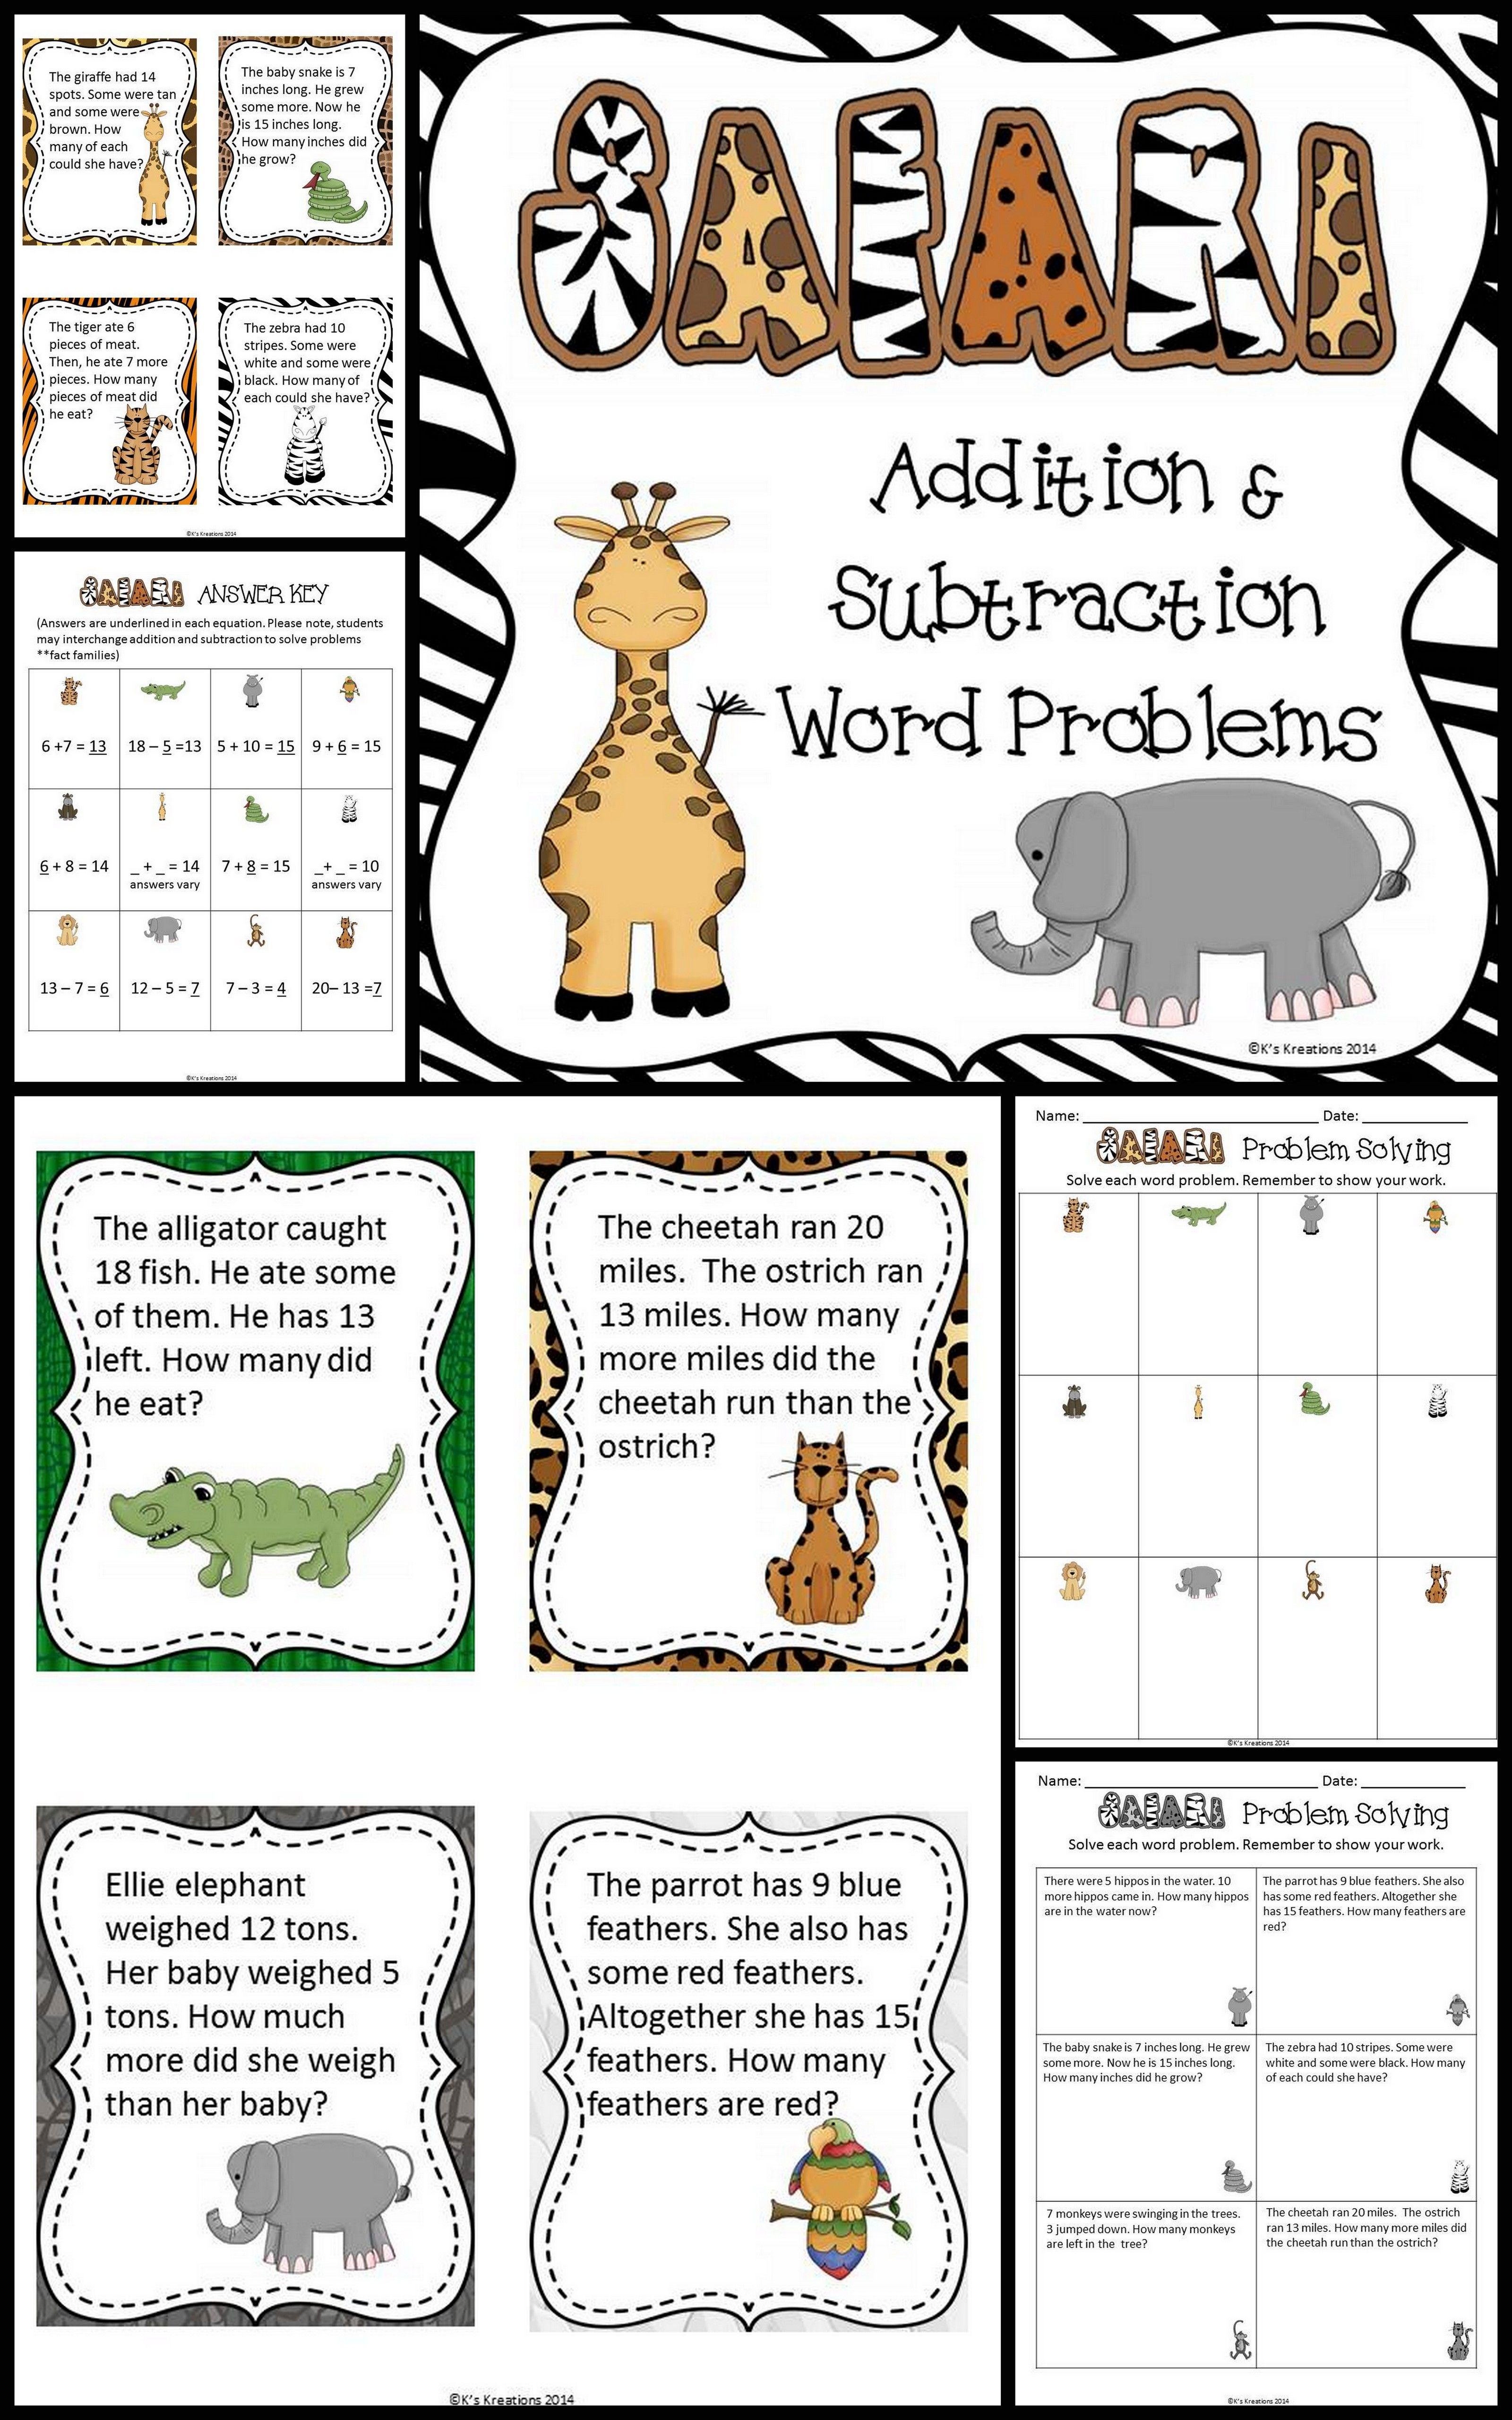 Practice Solving Addition And Subtraction Word Problems To 20 With Unknowns By Using These Safar Word Problems Math Word Problems Subtraction Word Problems [ 5120 x 3200 Pixel ]